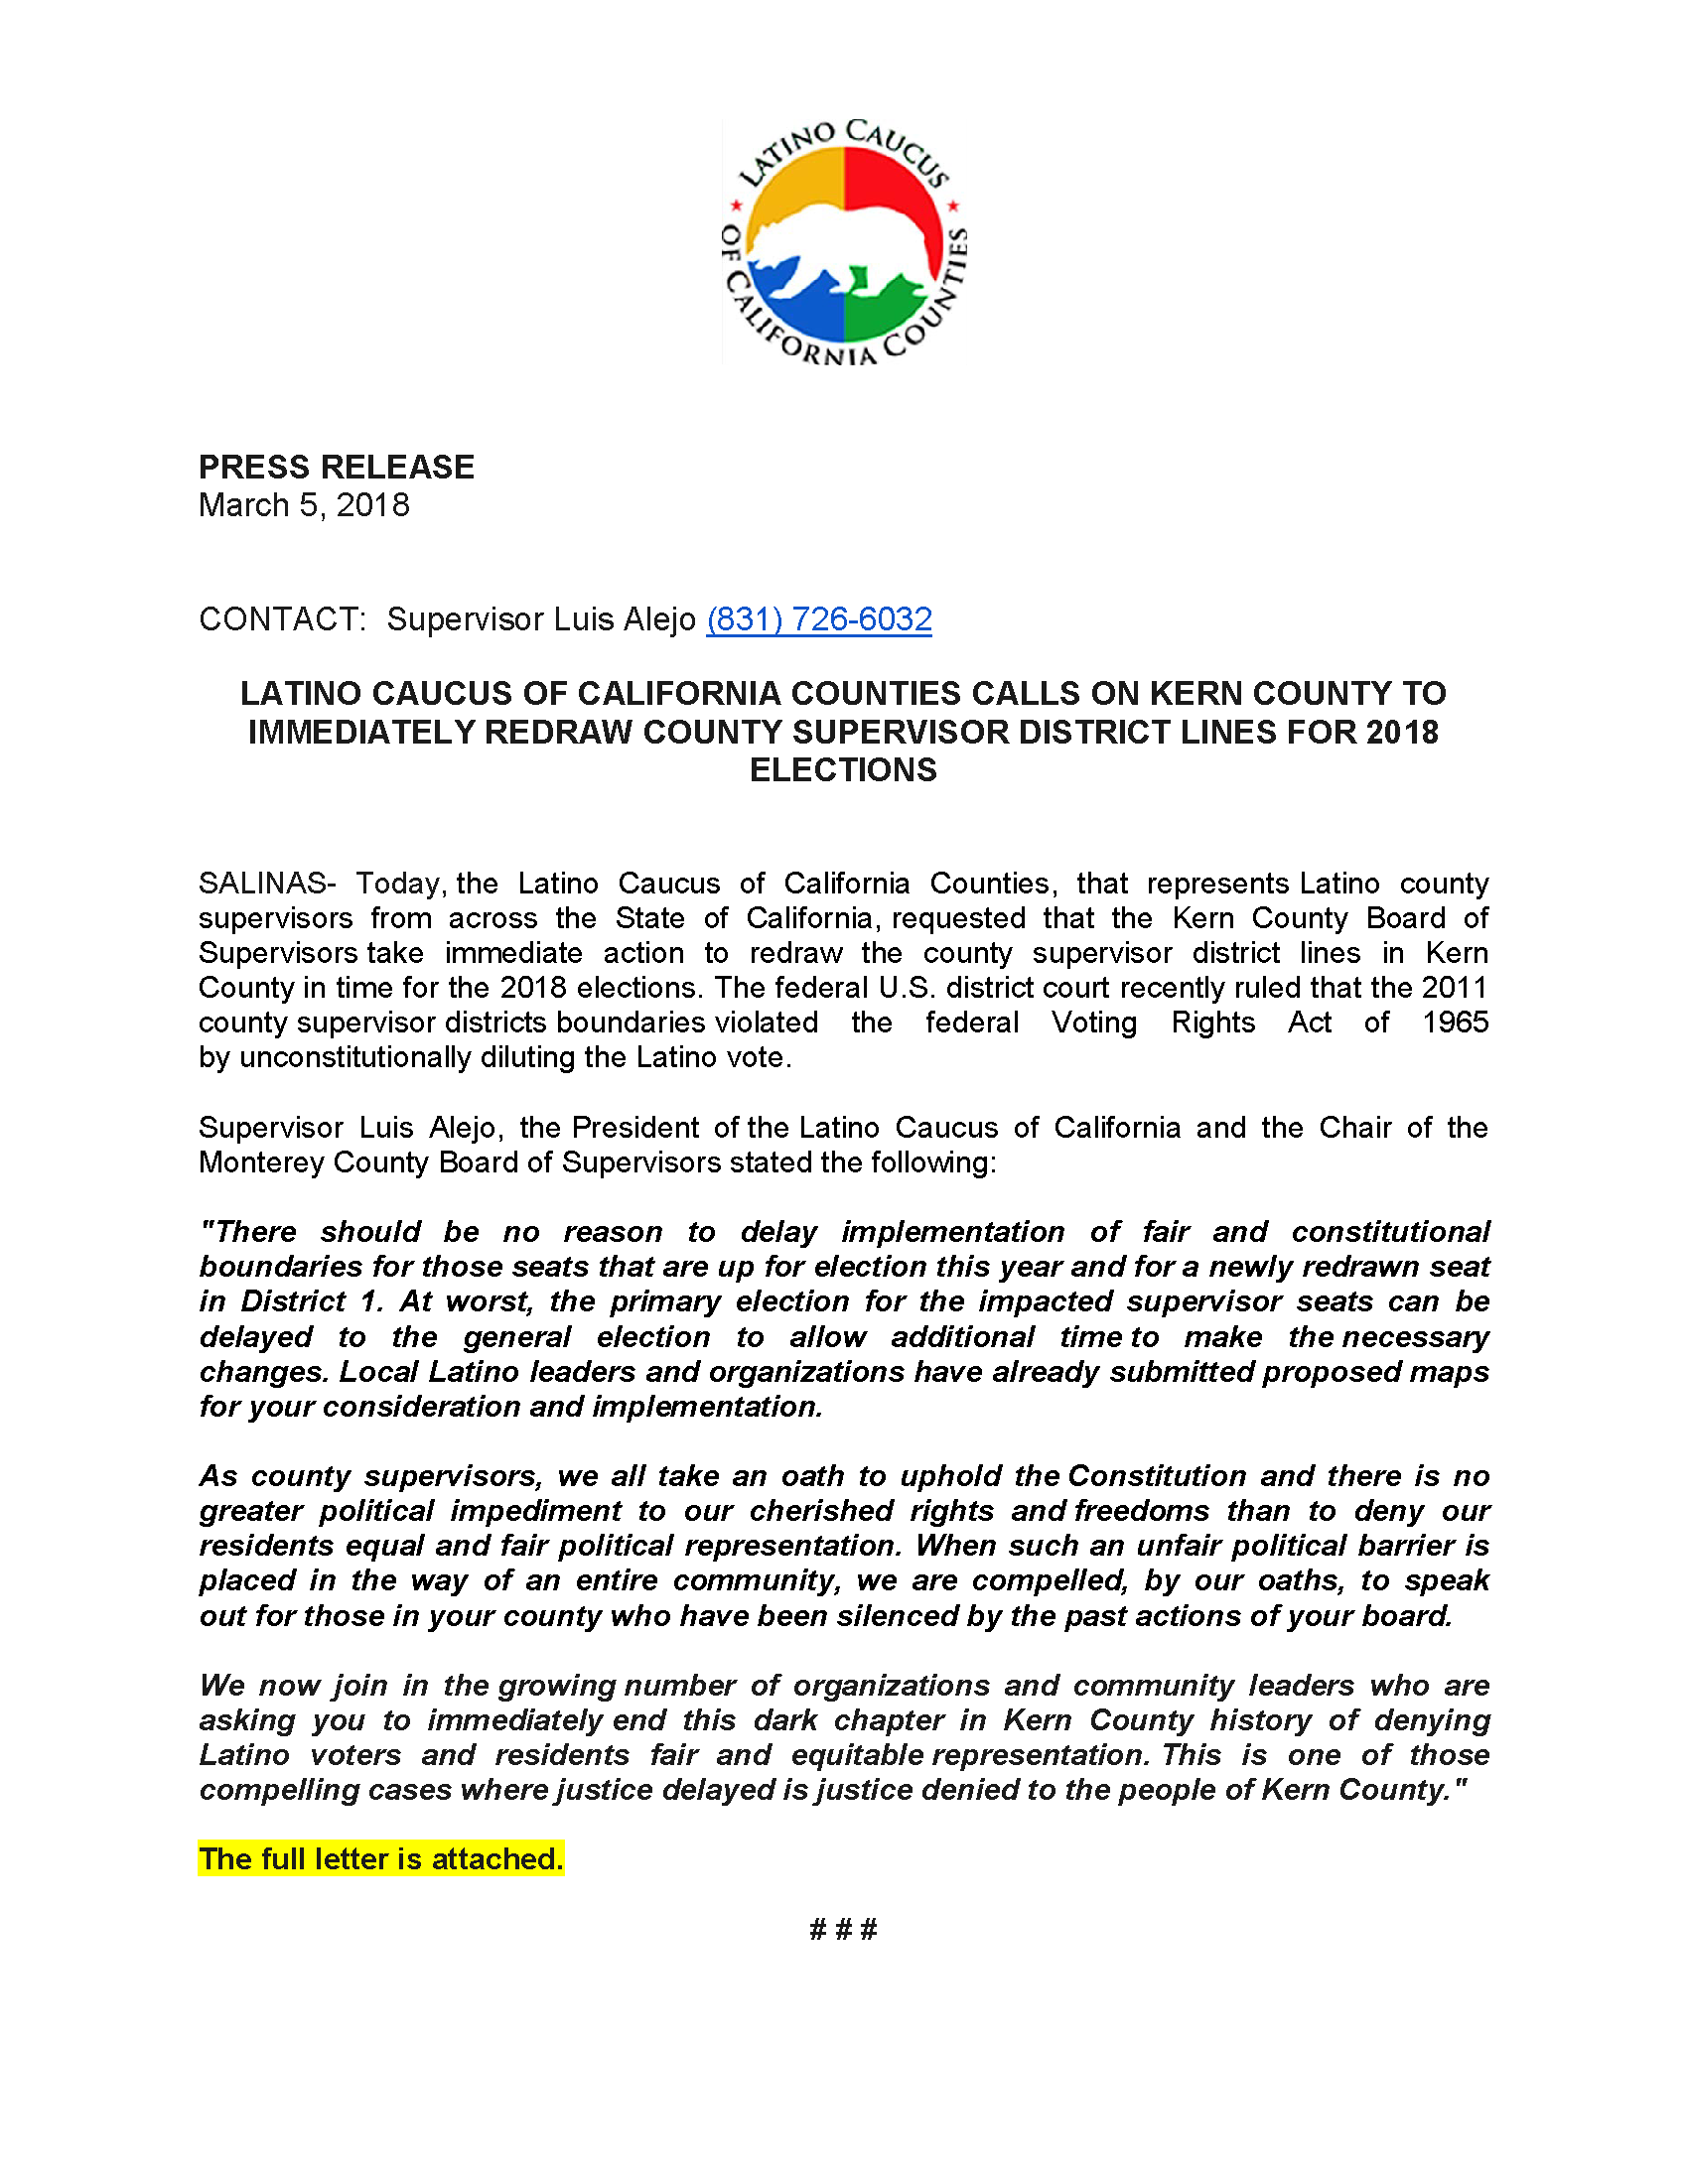 PRESS RELEASE- LCCC on Kern County  Lines 2018.png